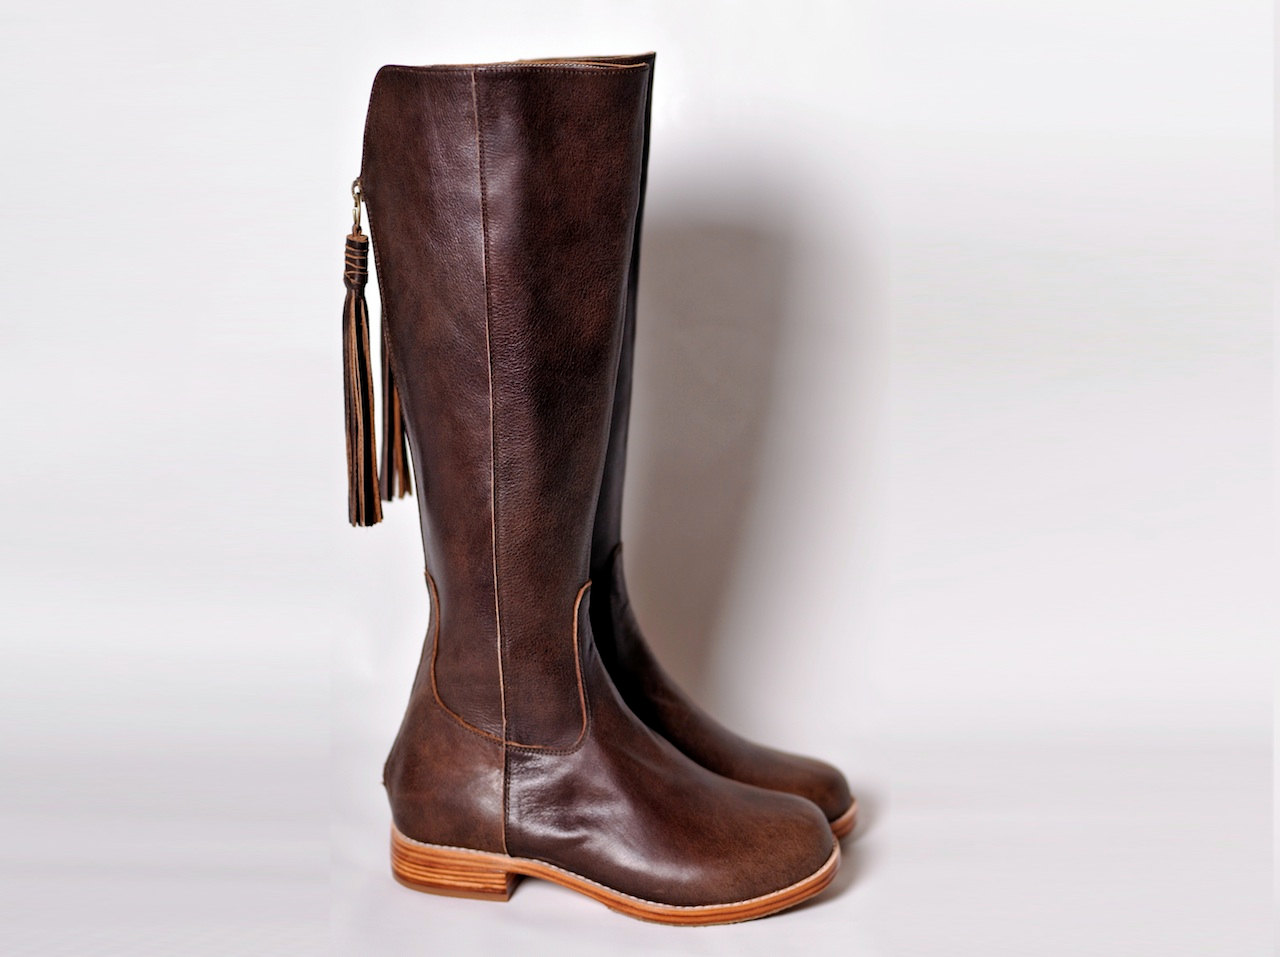 Brown Leather Boots For Women aB8TYcr6